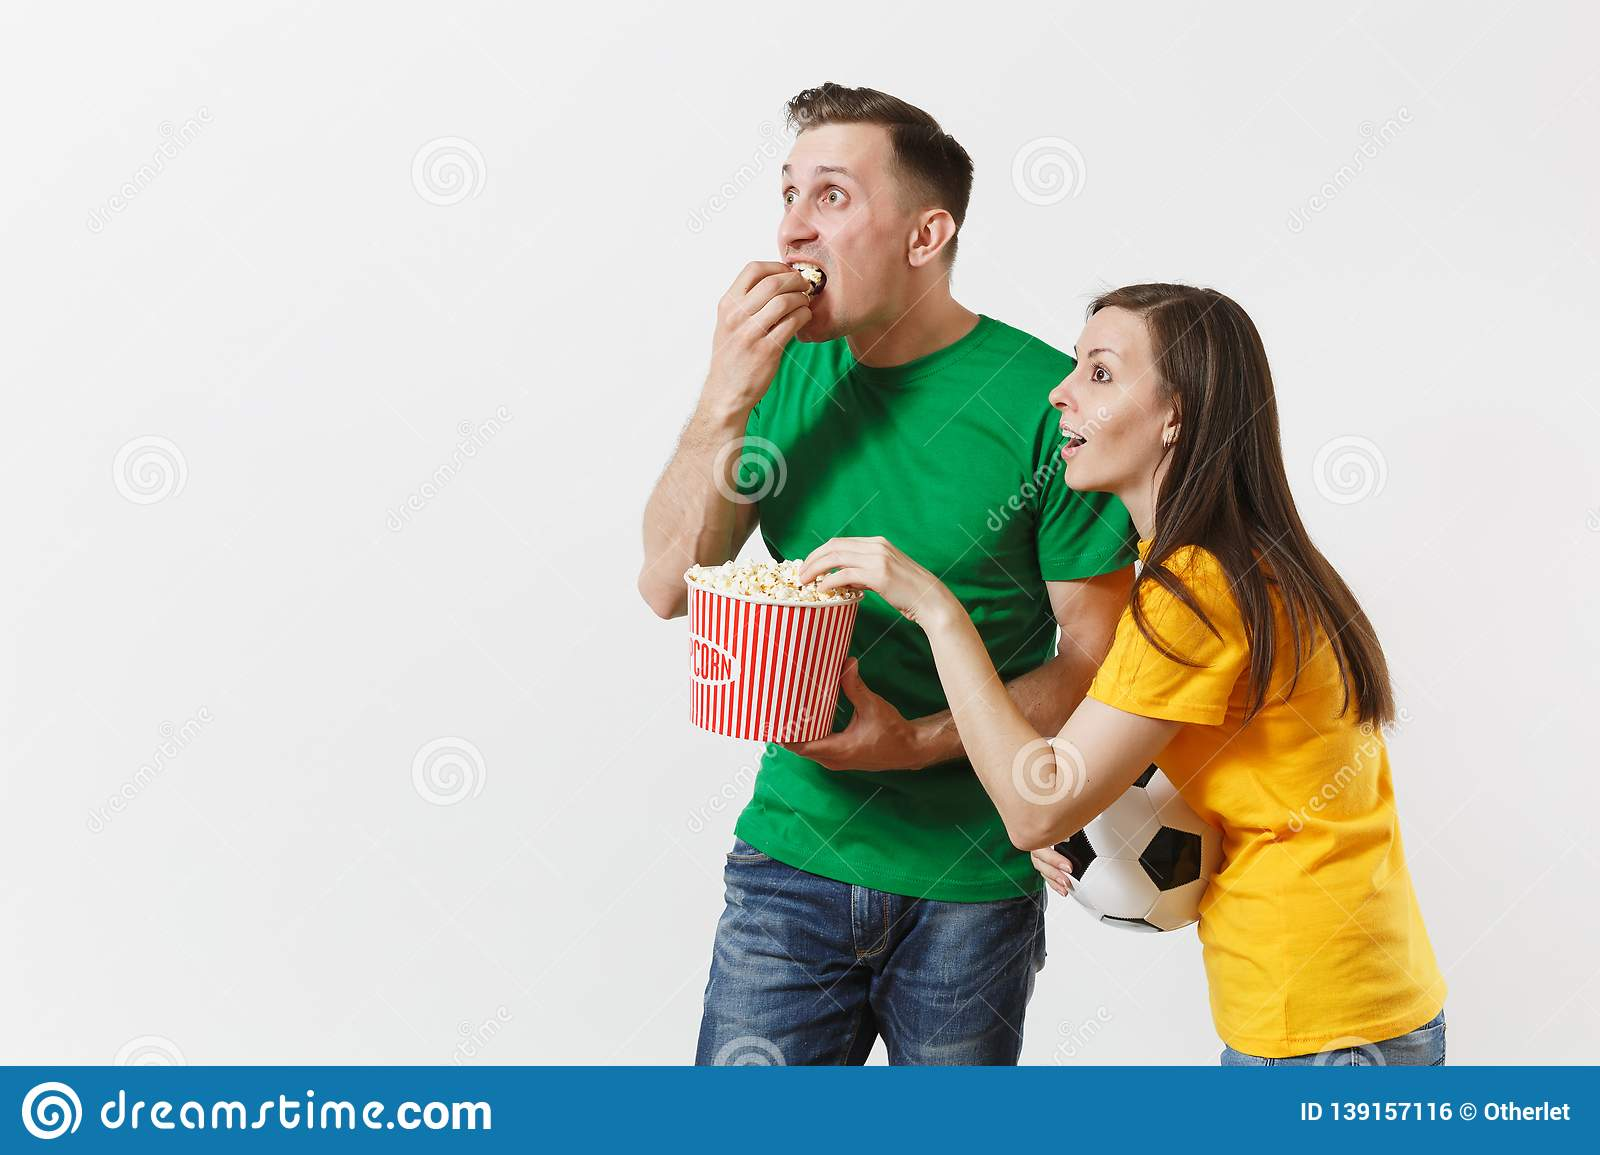 Shocked young couple, woman, man, football fans in yellow green t-shirt cheer up support team with soccer ball bucket of